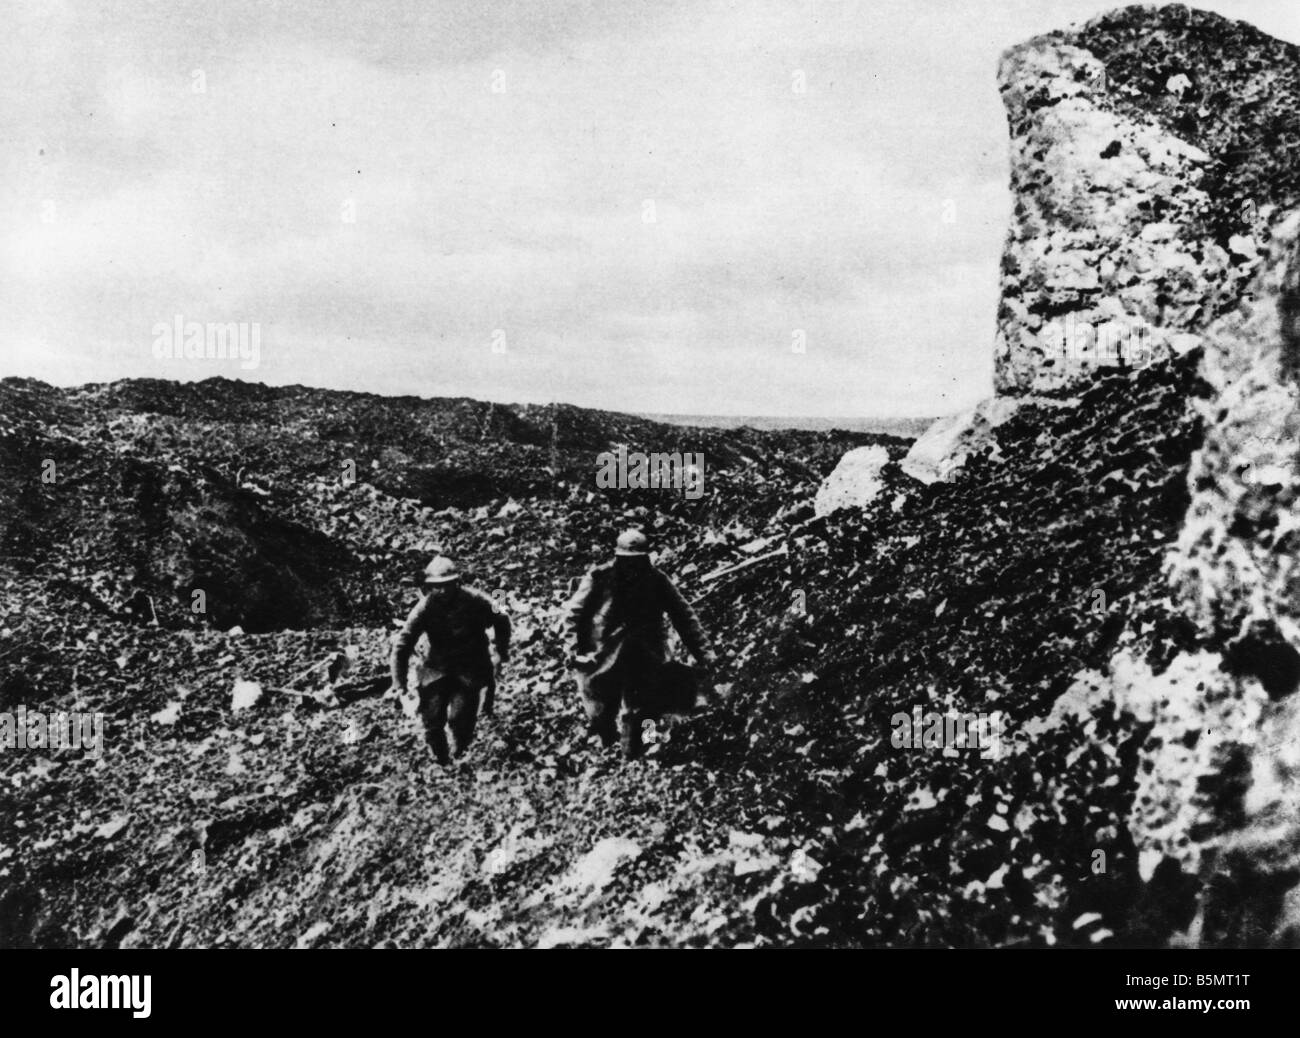 9FK 1916 11 22 A1 E French Messengers Verdun 1916 World War I France Battle of Verdun 1916 French Messengers bringing - Stock Image